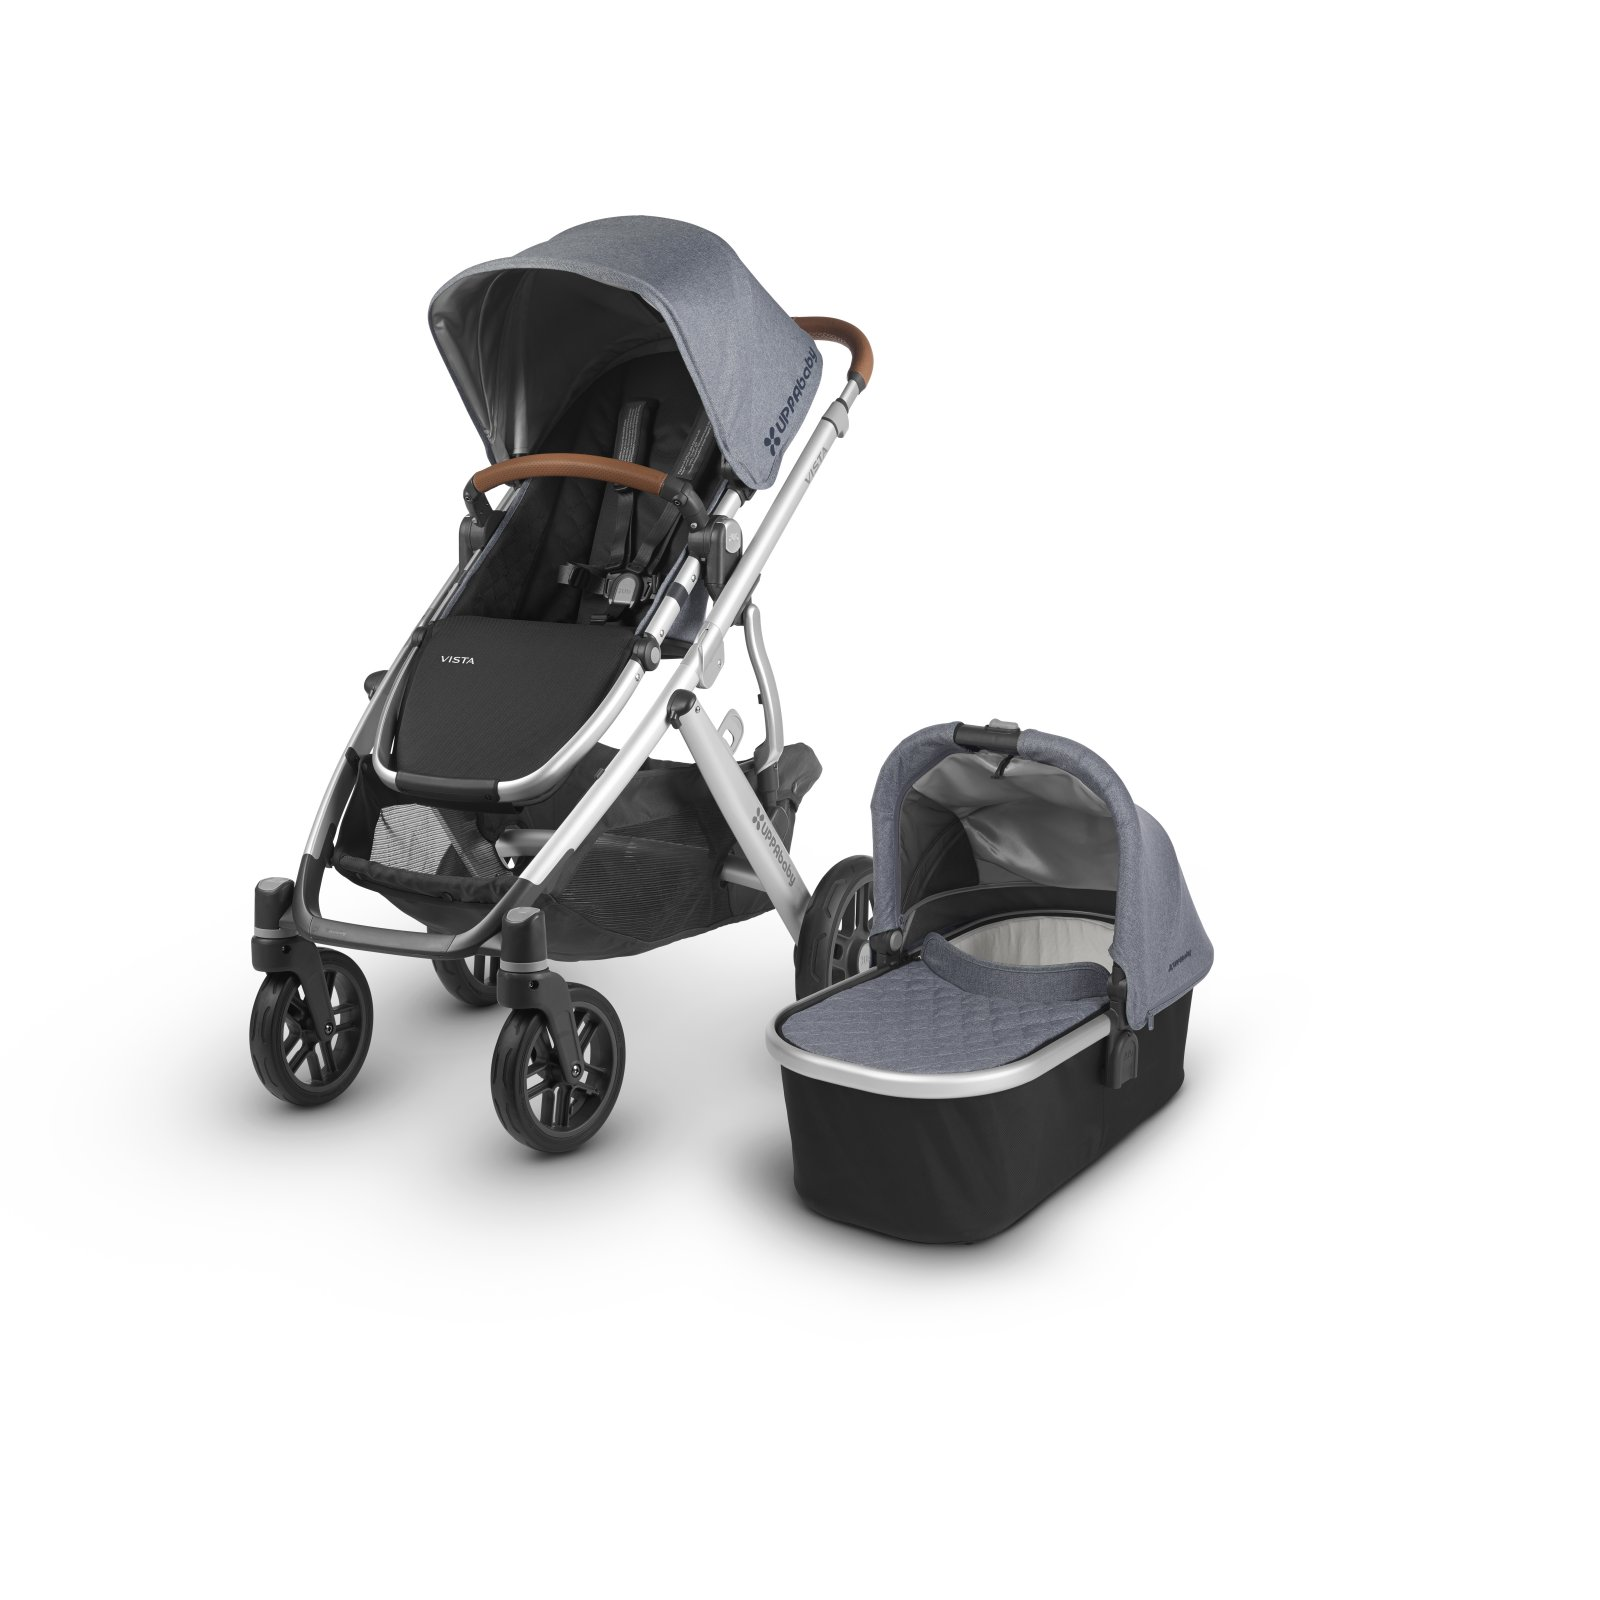 UPPAbaby VISTA Stroller - GREGORY (Blue Melange/Silver/Saddle Leather)